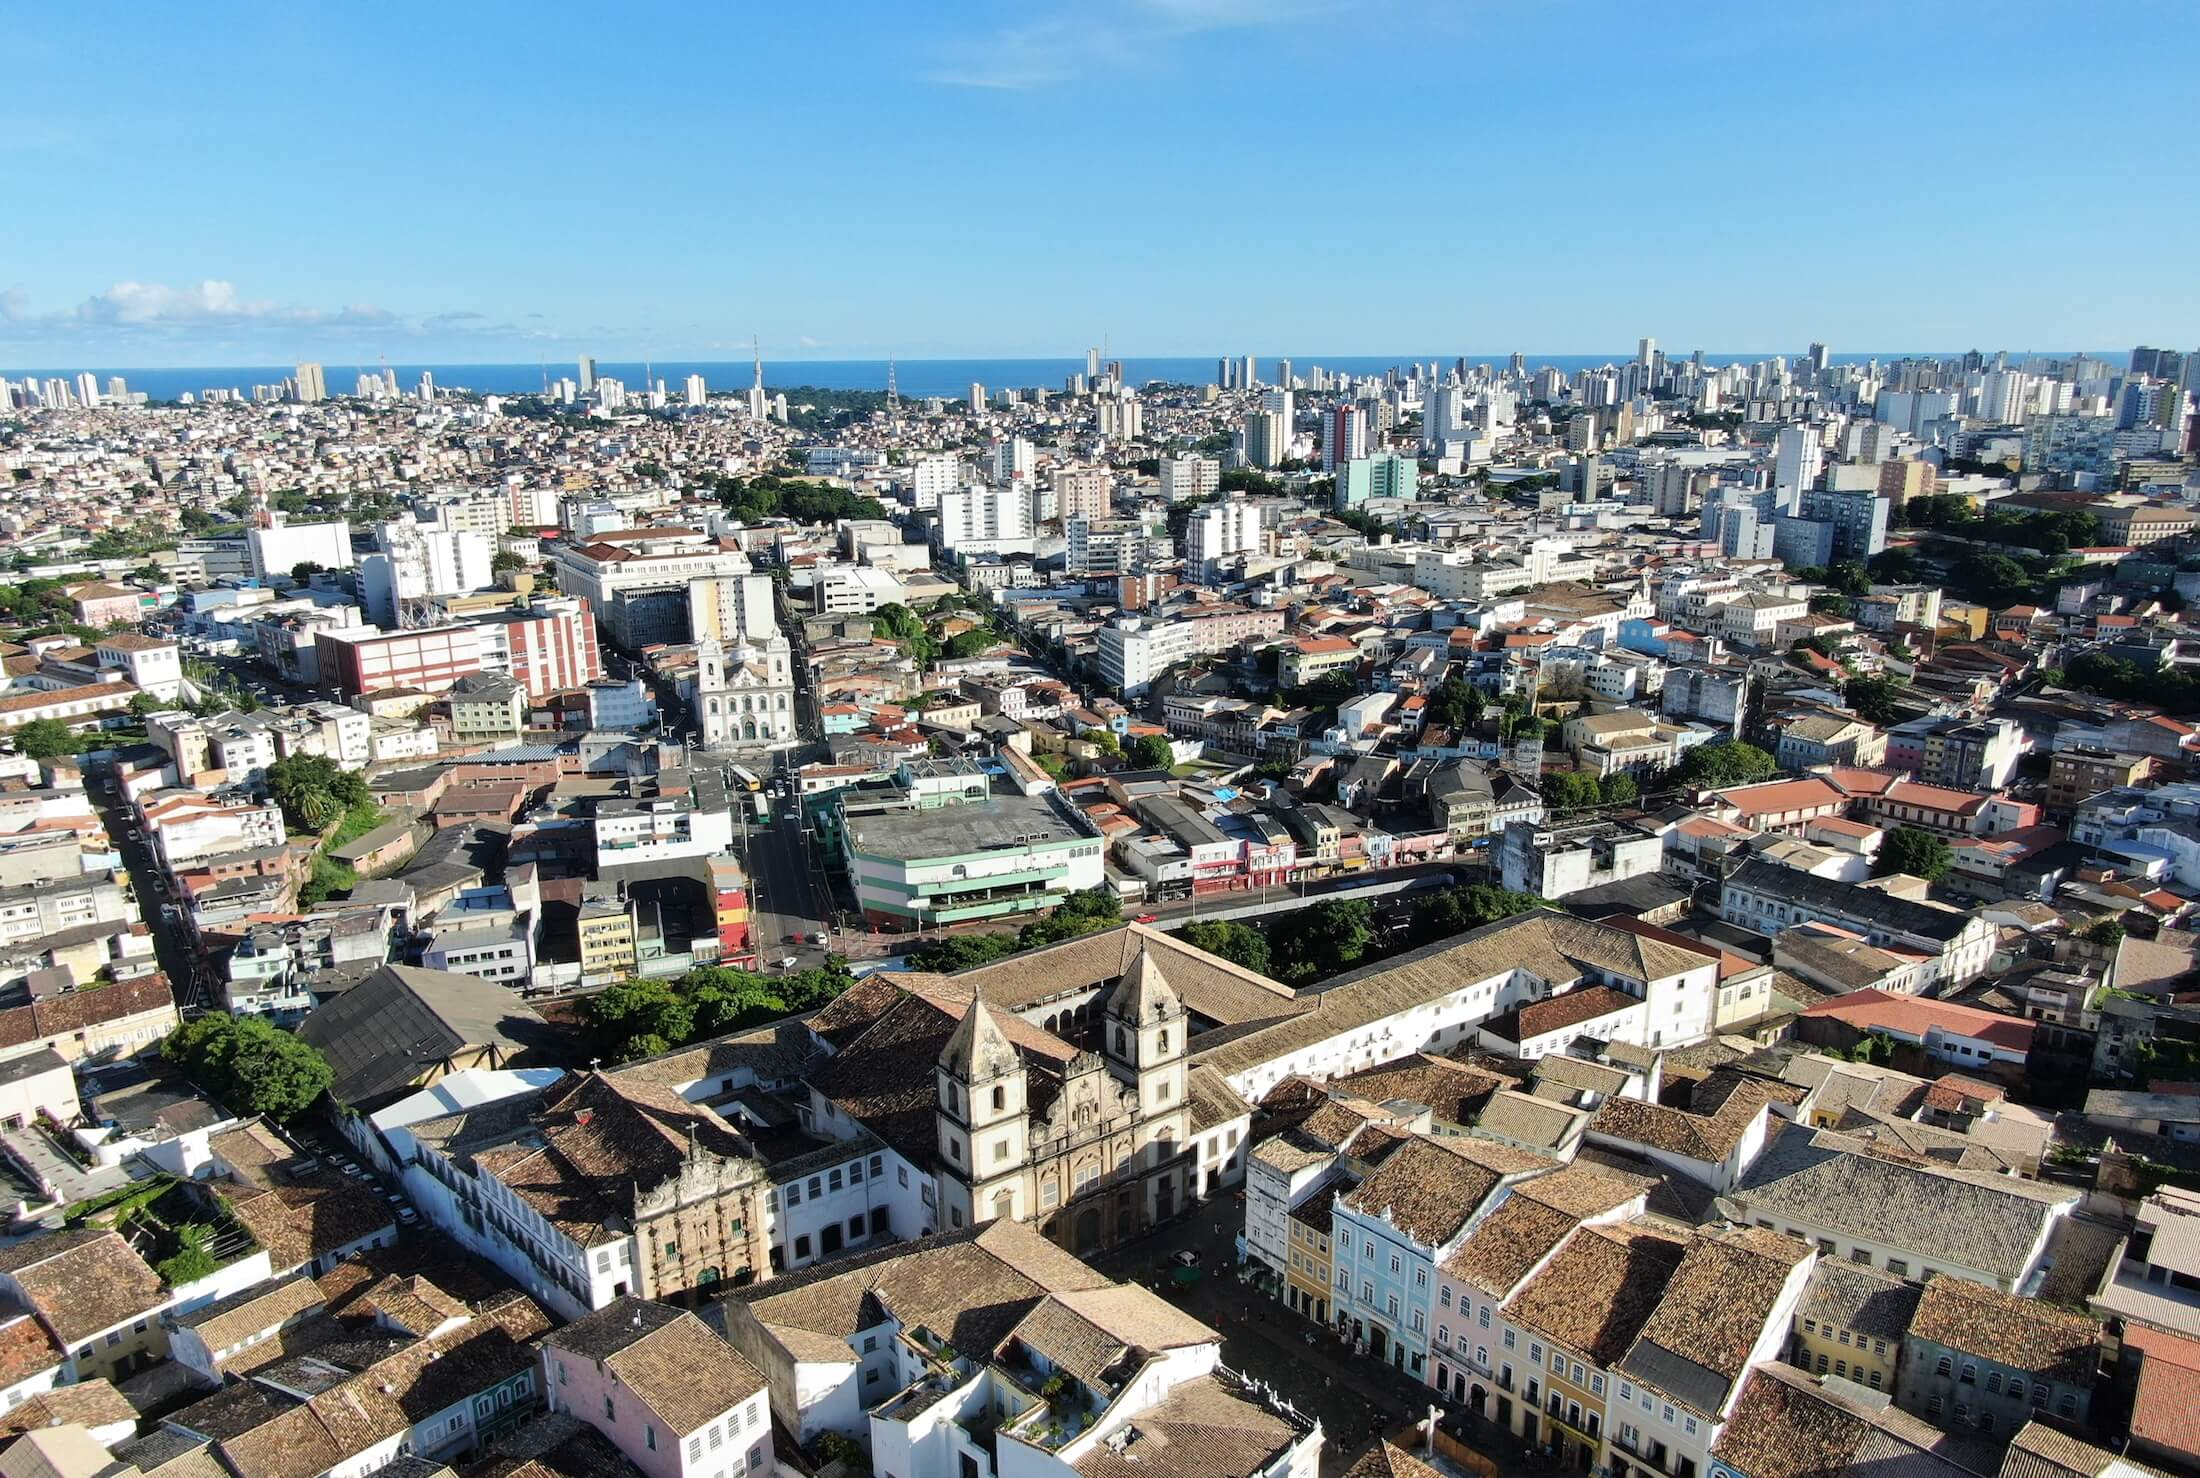 A historic city of Brazil, this is a place that deserves a visit